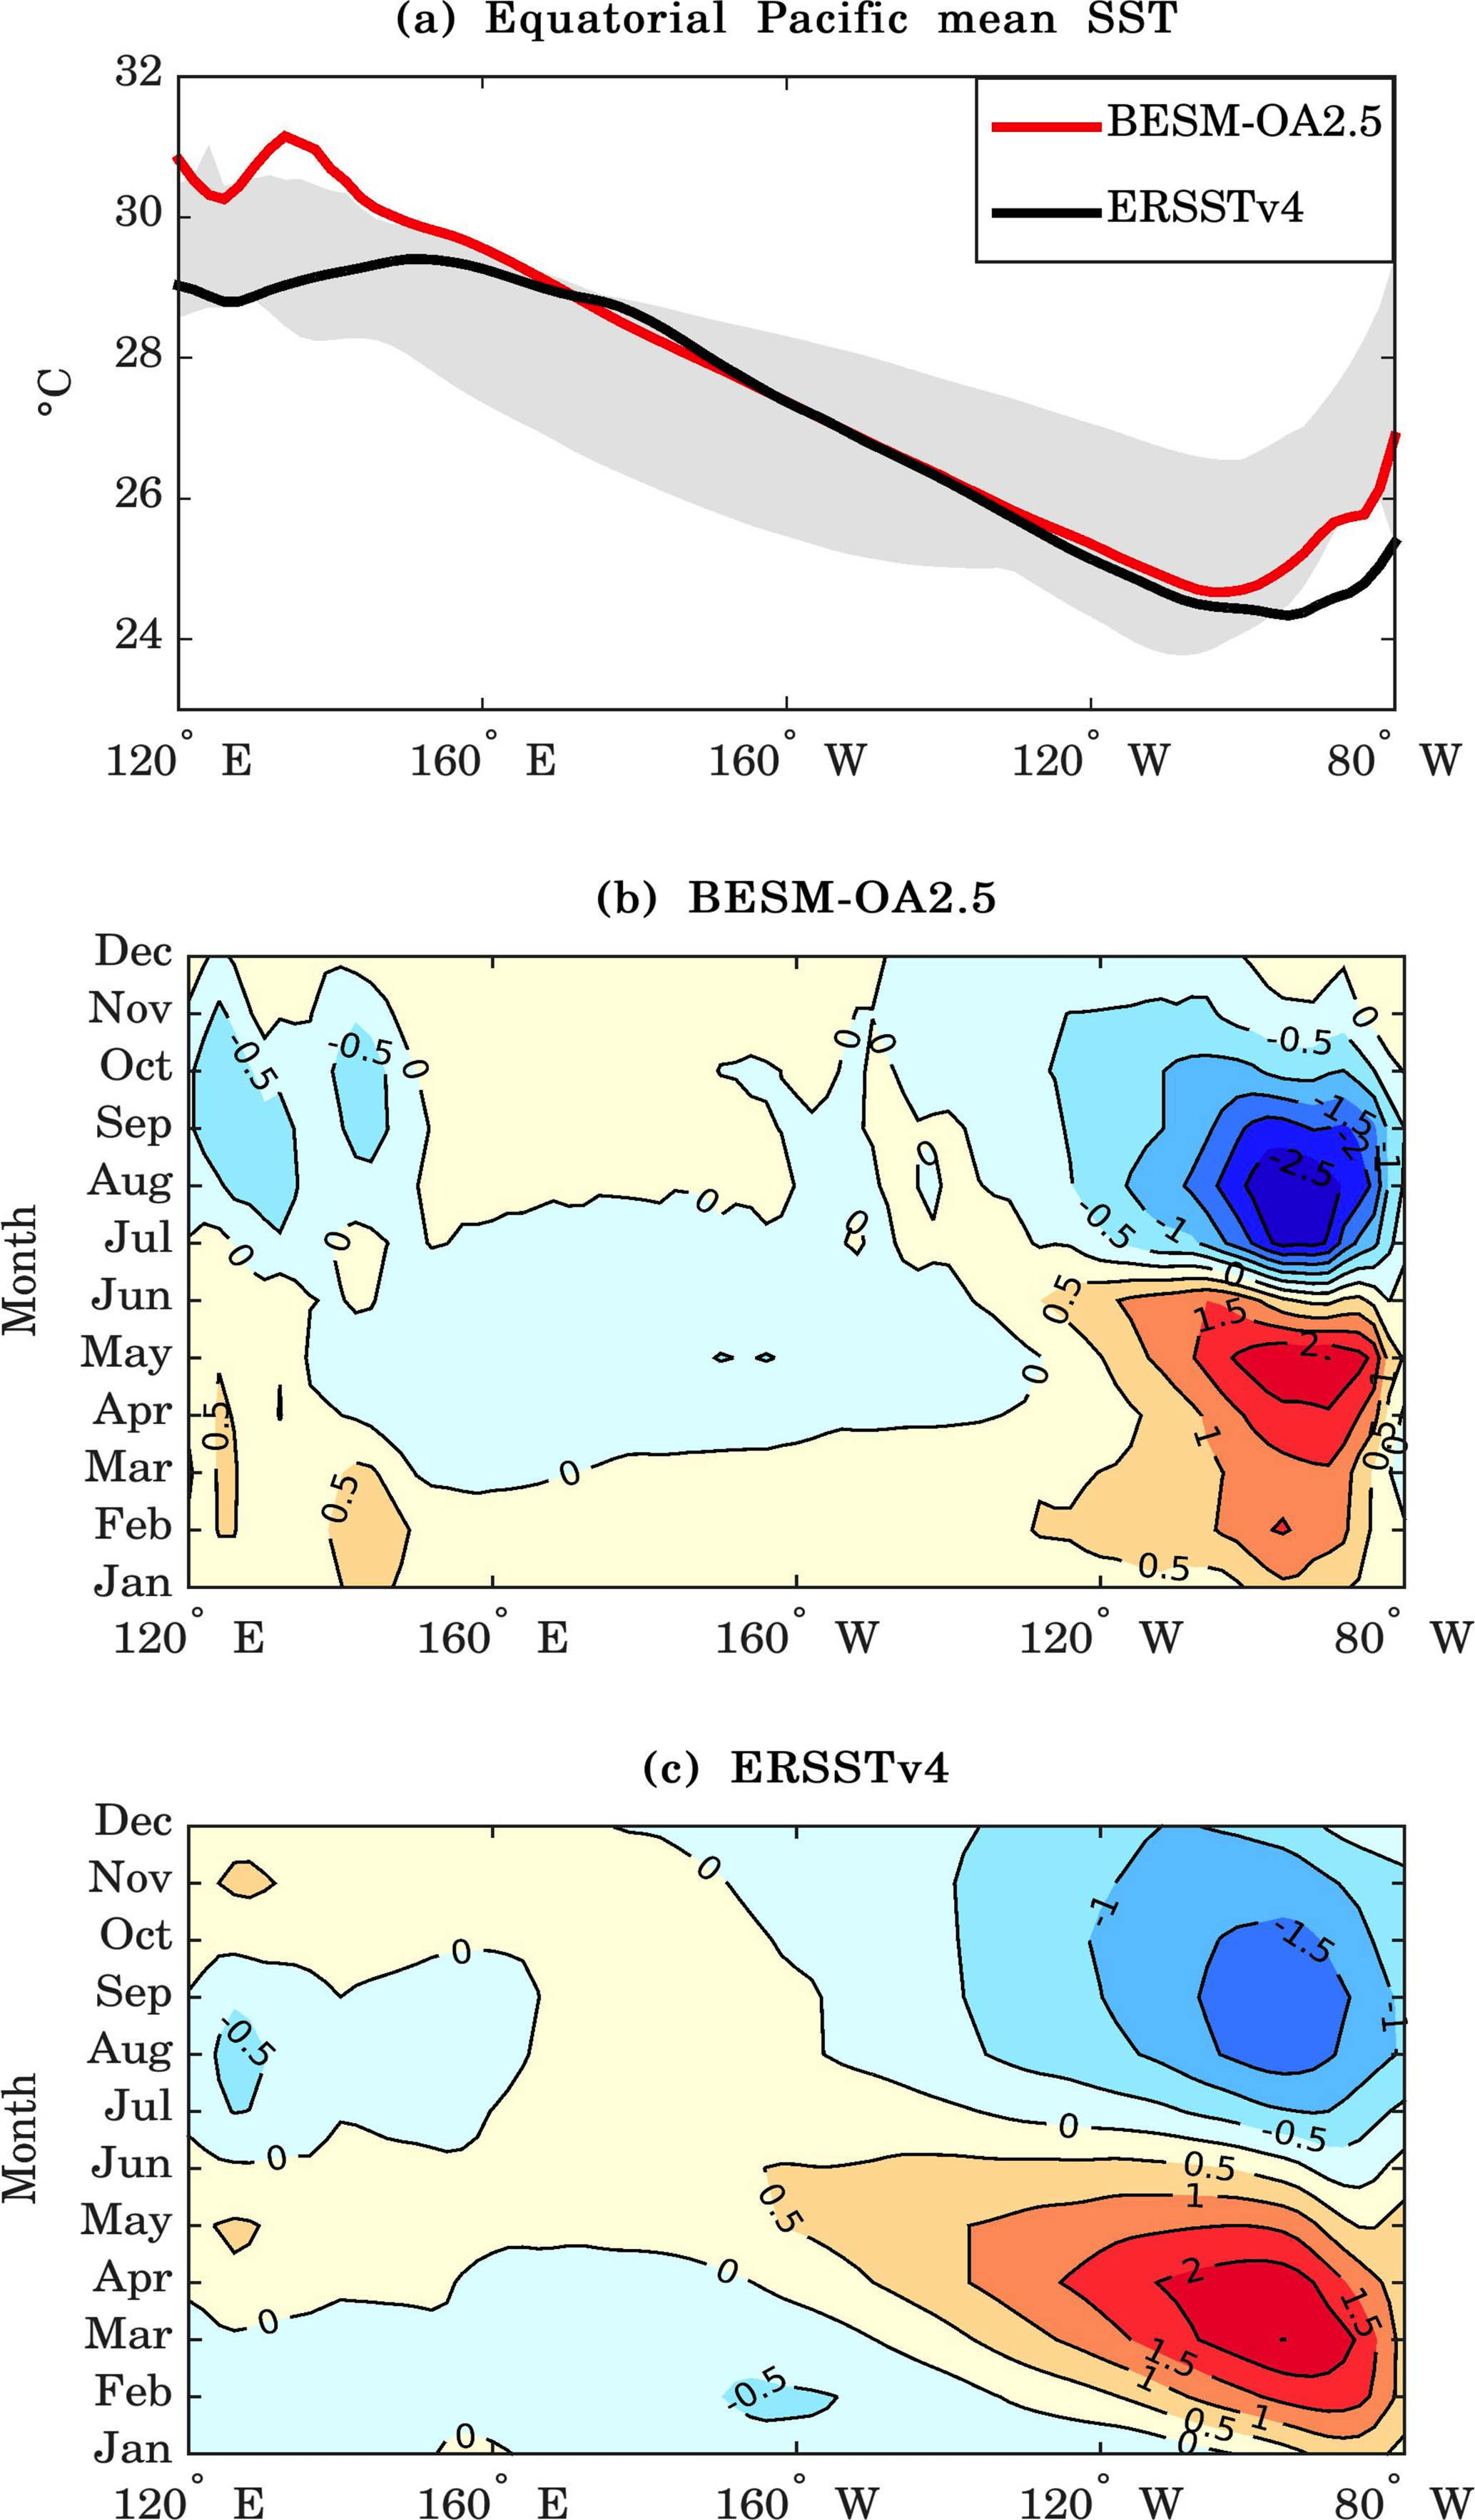 GMD - The Brazilian Earth System Model ocean–atmosphere (BESM-OA